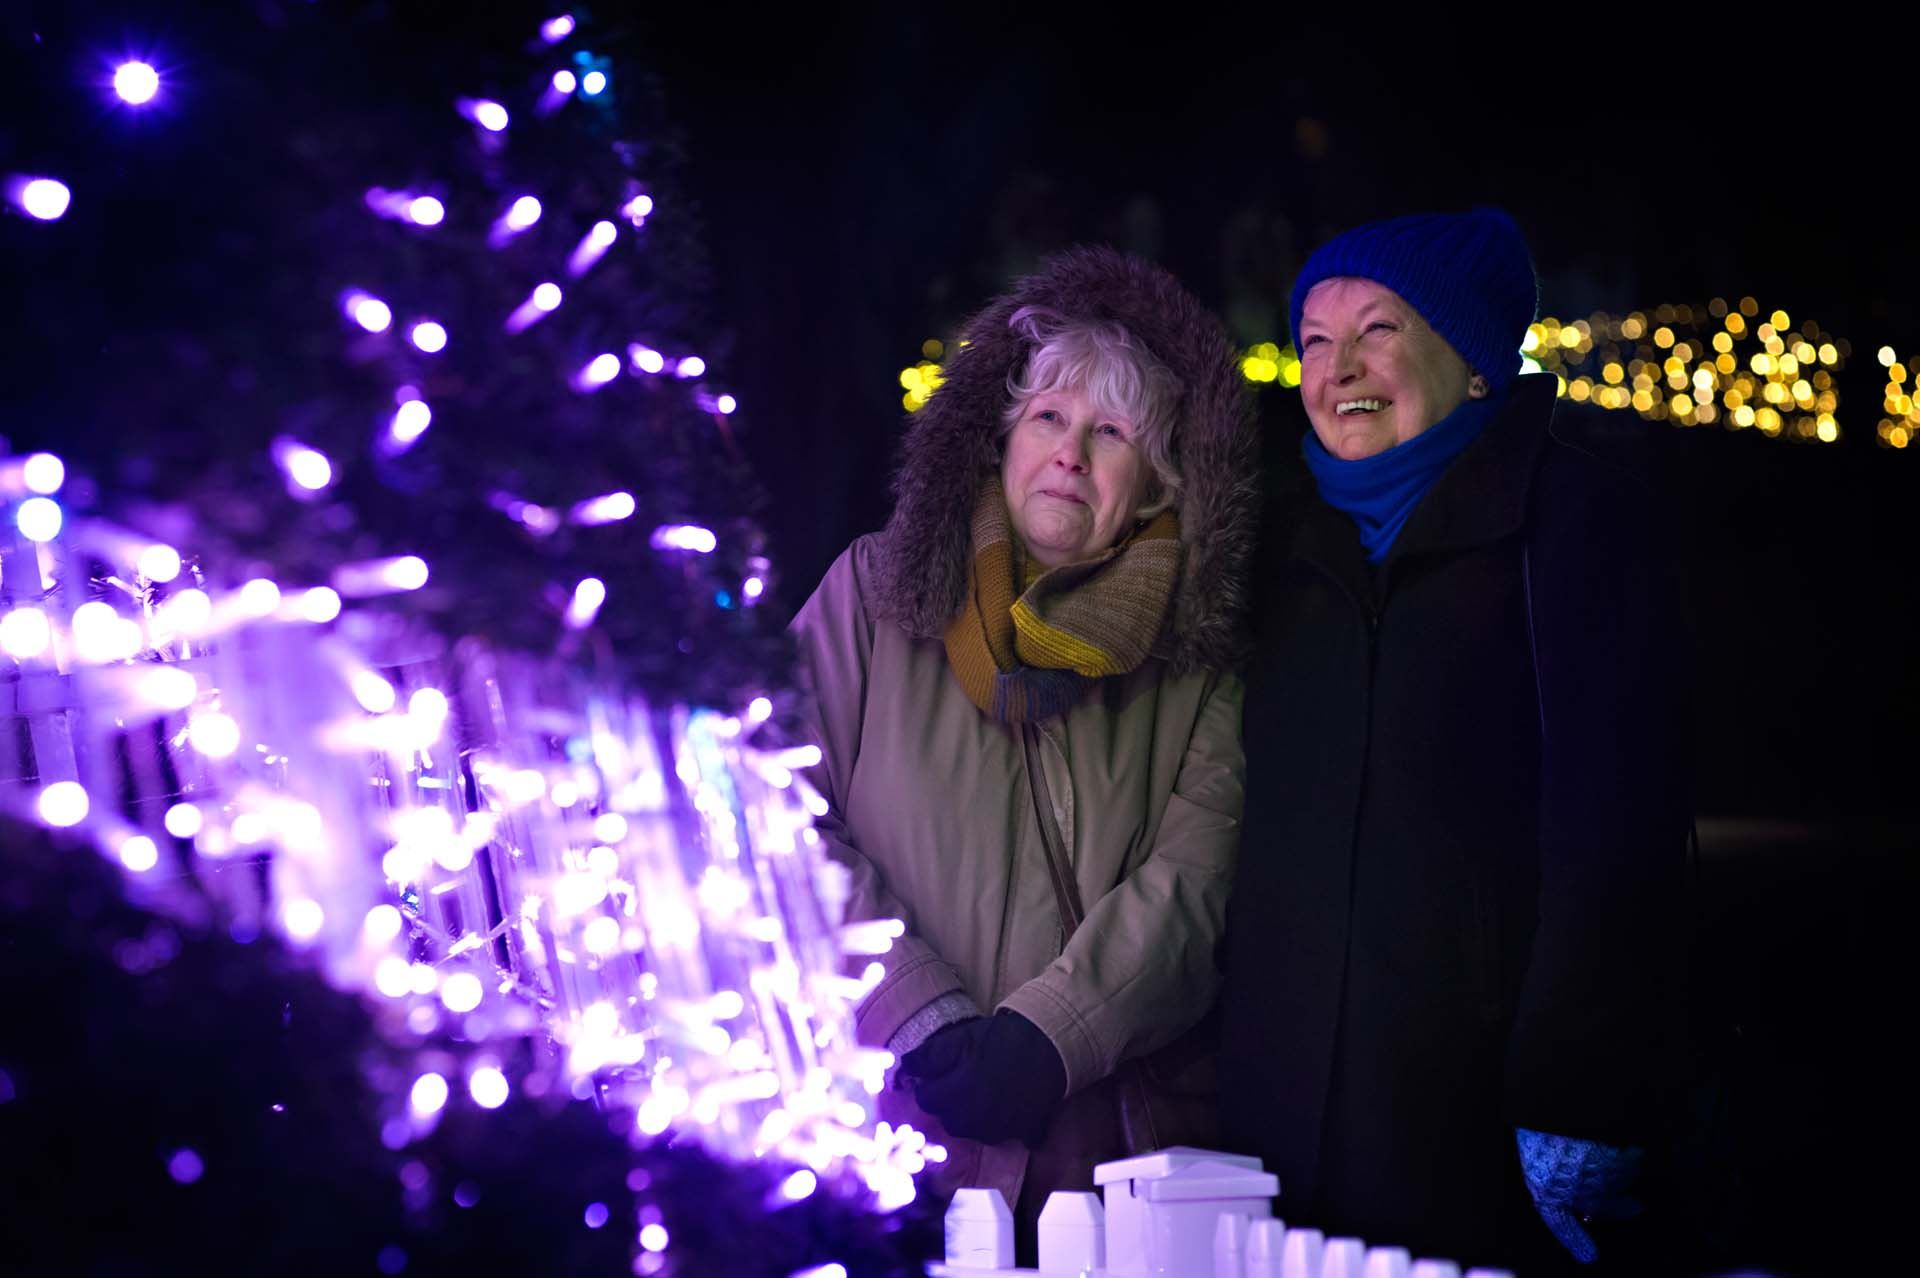 Two women in awe of the Warsaw Christmas Tree